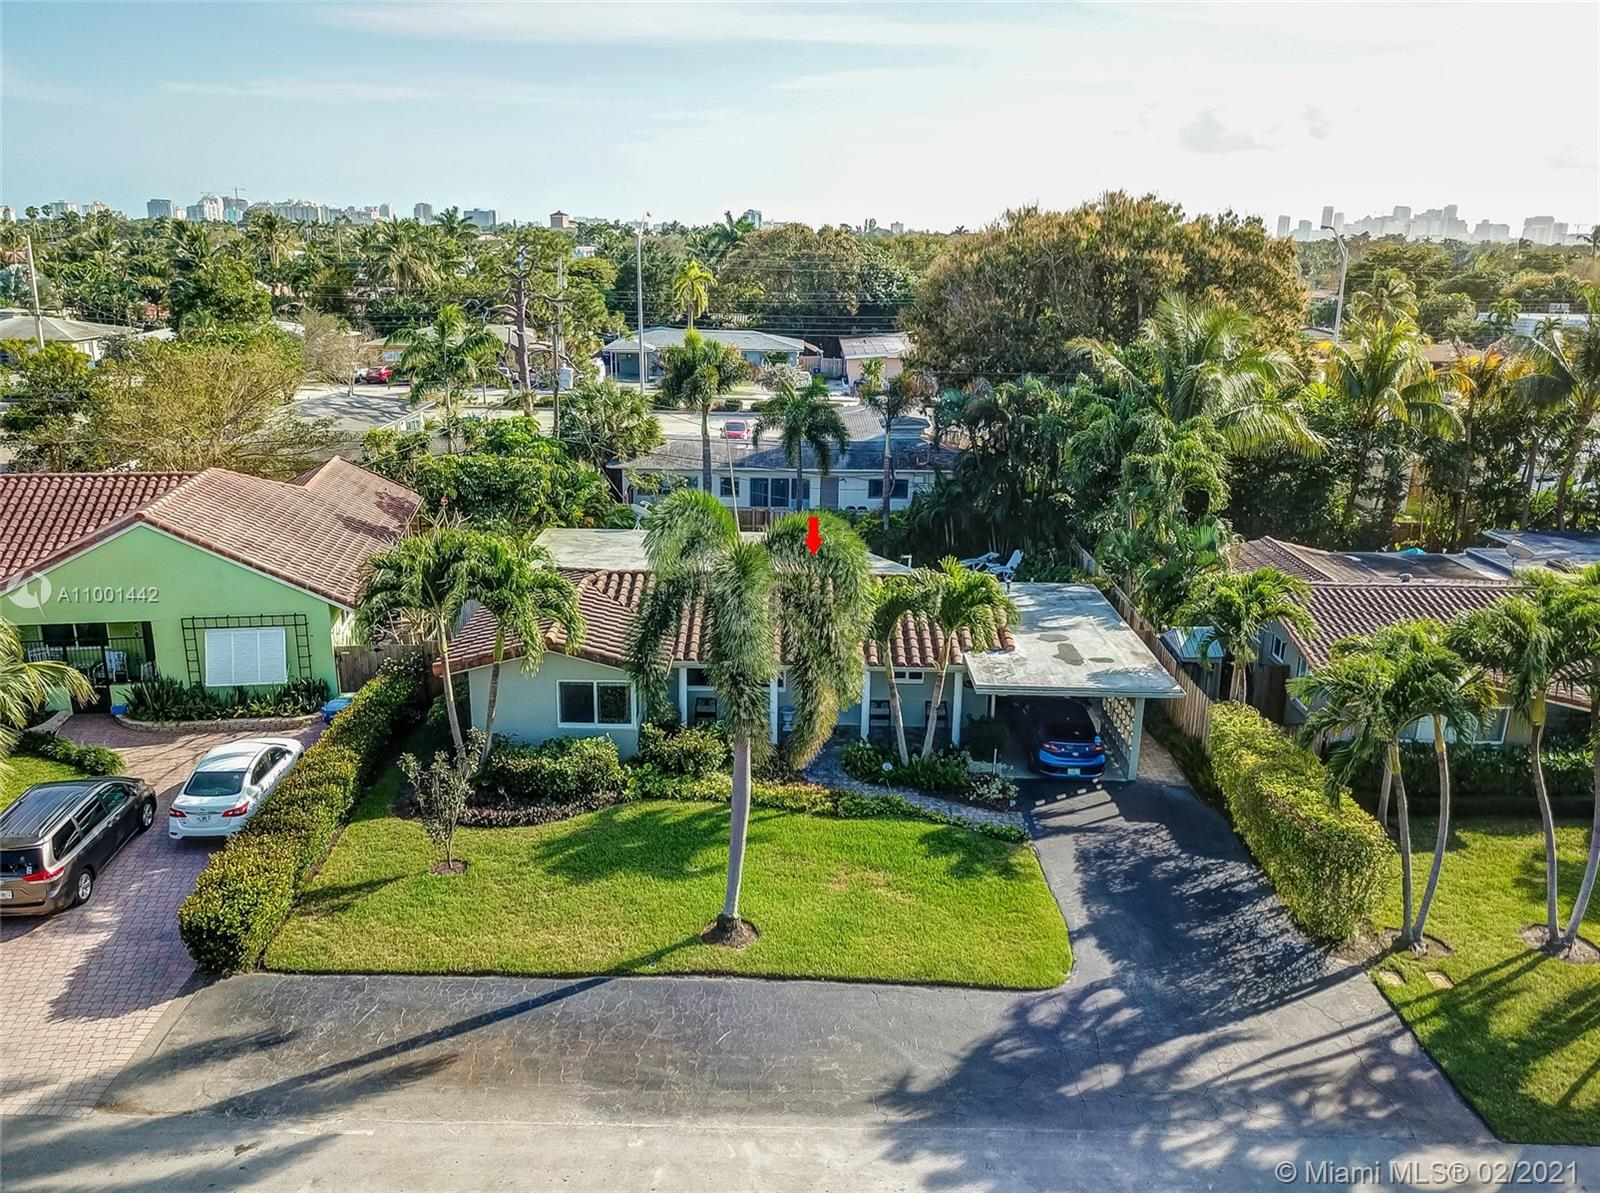 UPGRADED HOME IN THE HEART OF WILTON MANORS! WALKING DISTANCE TO DOWNTOWN AREA. THIS IS ONE OF THE ONLY PROPERTIES AVAILABLE IN THIS SECTION AND HAS THE REPUTATION TO BE ONE OF THE BEST NEIGHBORHOODS IN THE MANOR! THIS PROPERTY HAS ALL HURRICANE IMPACT ENERGY EFFICIENT WINDOWS (CUSTOM SIZED) WITH SOME REALLY NICE CORNER WINDOWS THAT BRINGS AN ABUNDANCE OF NATURAL LIGHT. THE KITCHEN AND BOTH BATHROOMS HAVE BEEN UPGRADED AND ARE VERY NICE AS WELL! THE HOME IS COZY INSIDE BUT THE EXTERIOR AREA REALLY SHOWS OFF TRUE FLORIDA LIVING! AMPLE ROOM OUTSIDE TO ENTERTAIN, VERY PRIVATE AND FULLY FENCED IN. PLENTY OF ROOM TO ADD A POOL! AT ASK PRICE THIS HOME COMES 100% TURNKEY FURNISHED AS WELL! NO RENTAL RESTRICTIONS AT ALL HERE AND NO HOMEOWNERS ASSOCIATION. ALL FINANCING OK - FHA & VA ARE NO PROBLEM